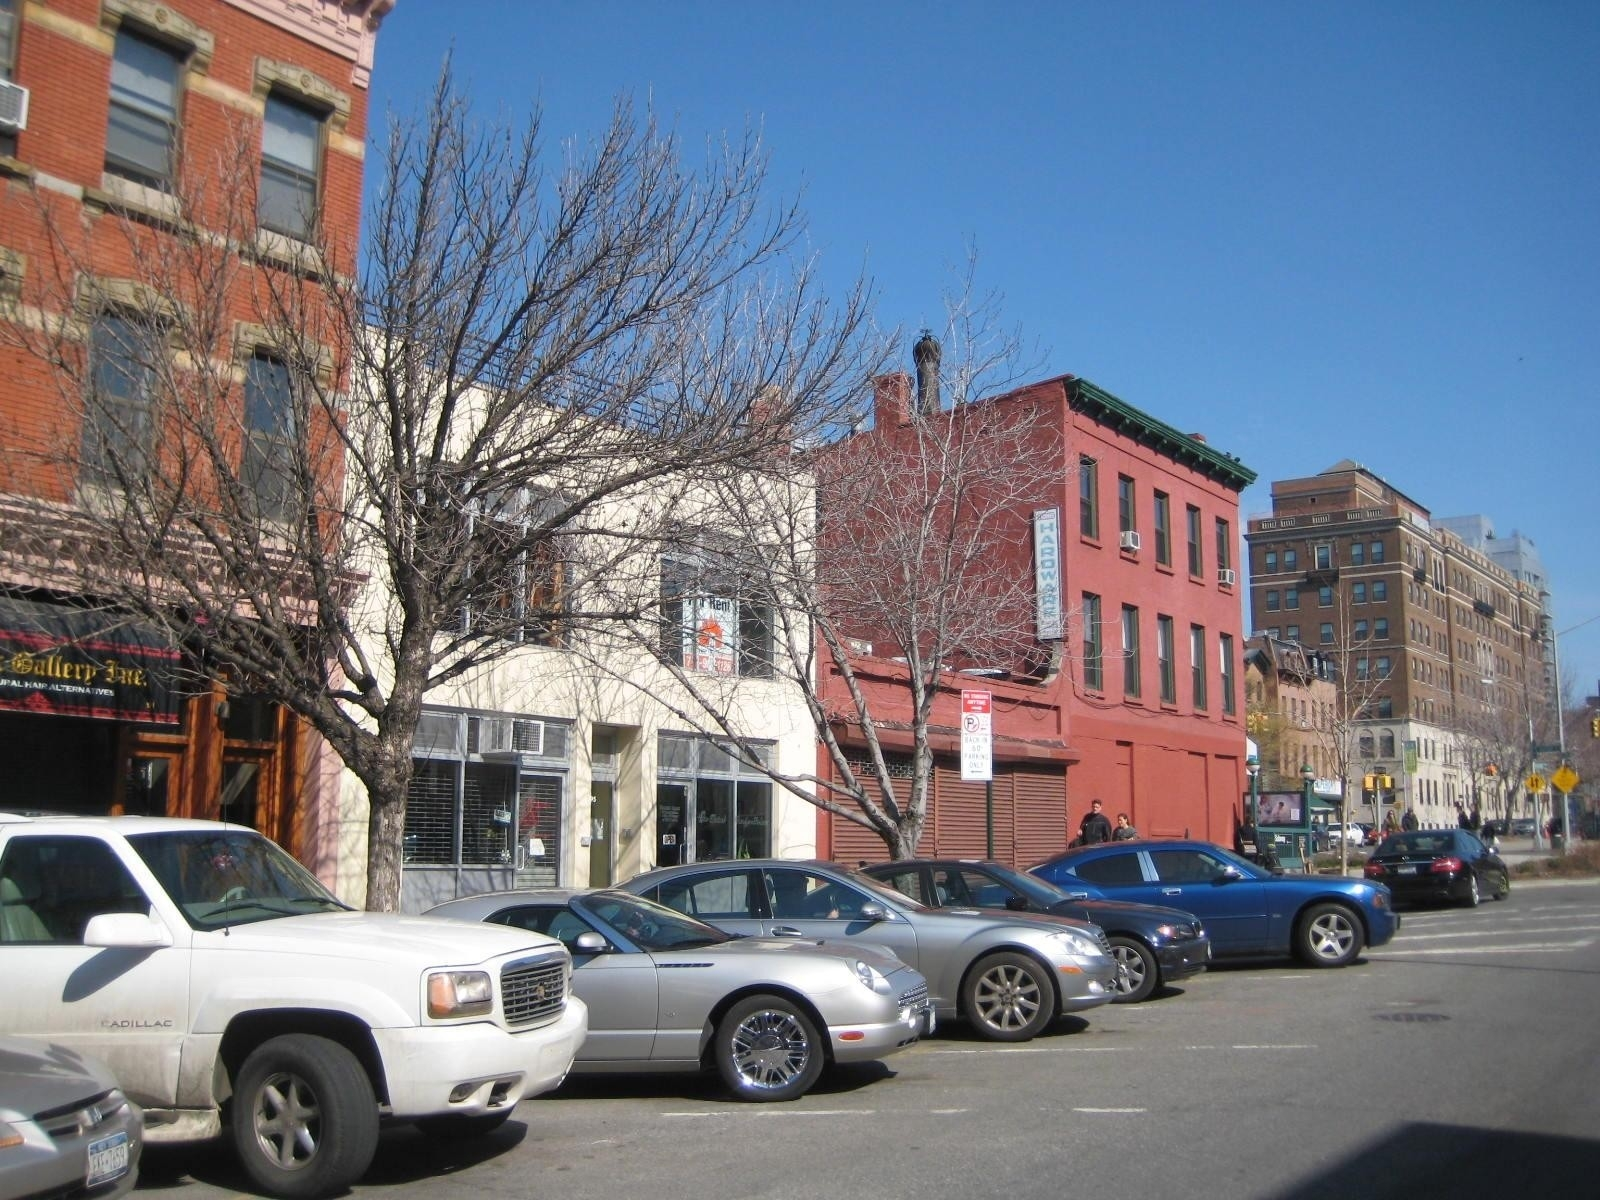 2. 建於91 Hanson Pl, Fort Greene, Brooklyn, NY